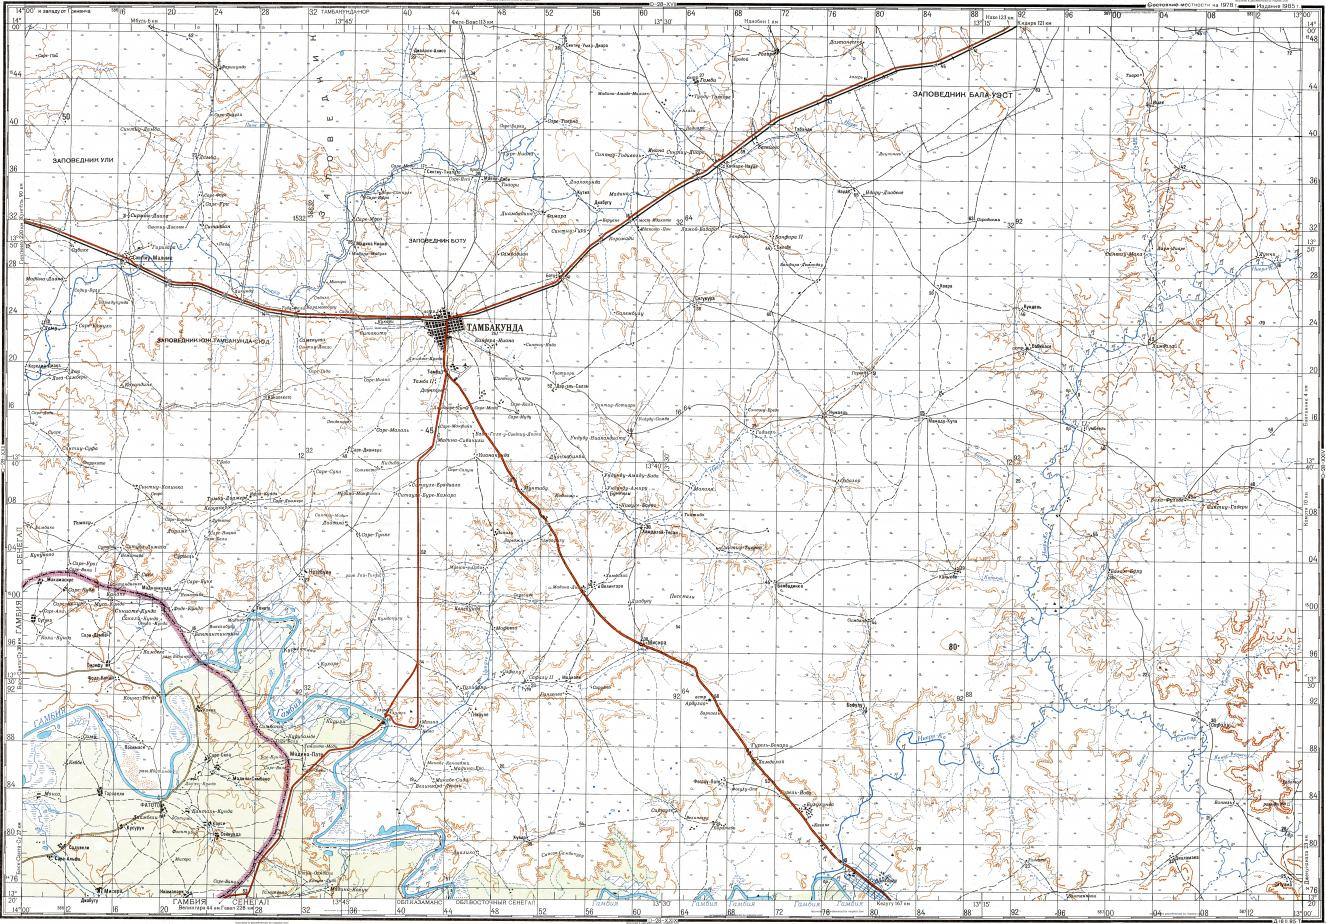 Download topographic map in area of Tambacounda Fatoto Goumbeyel